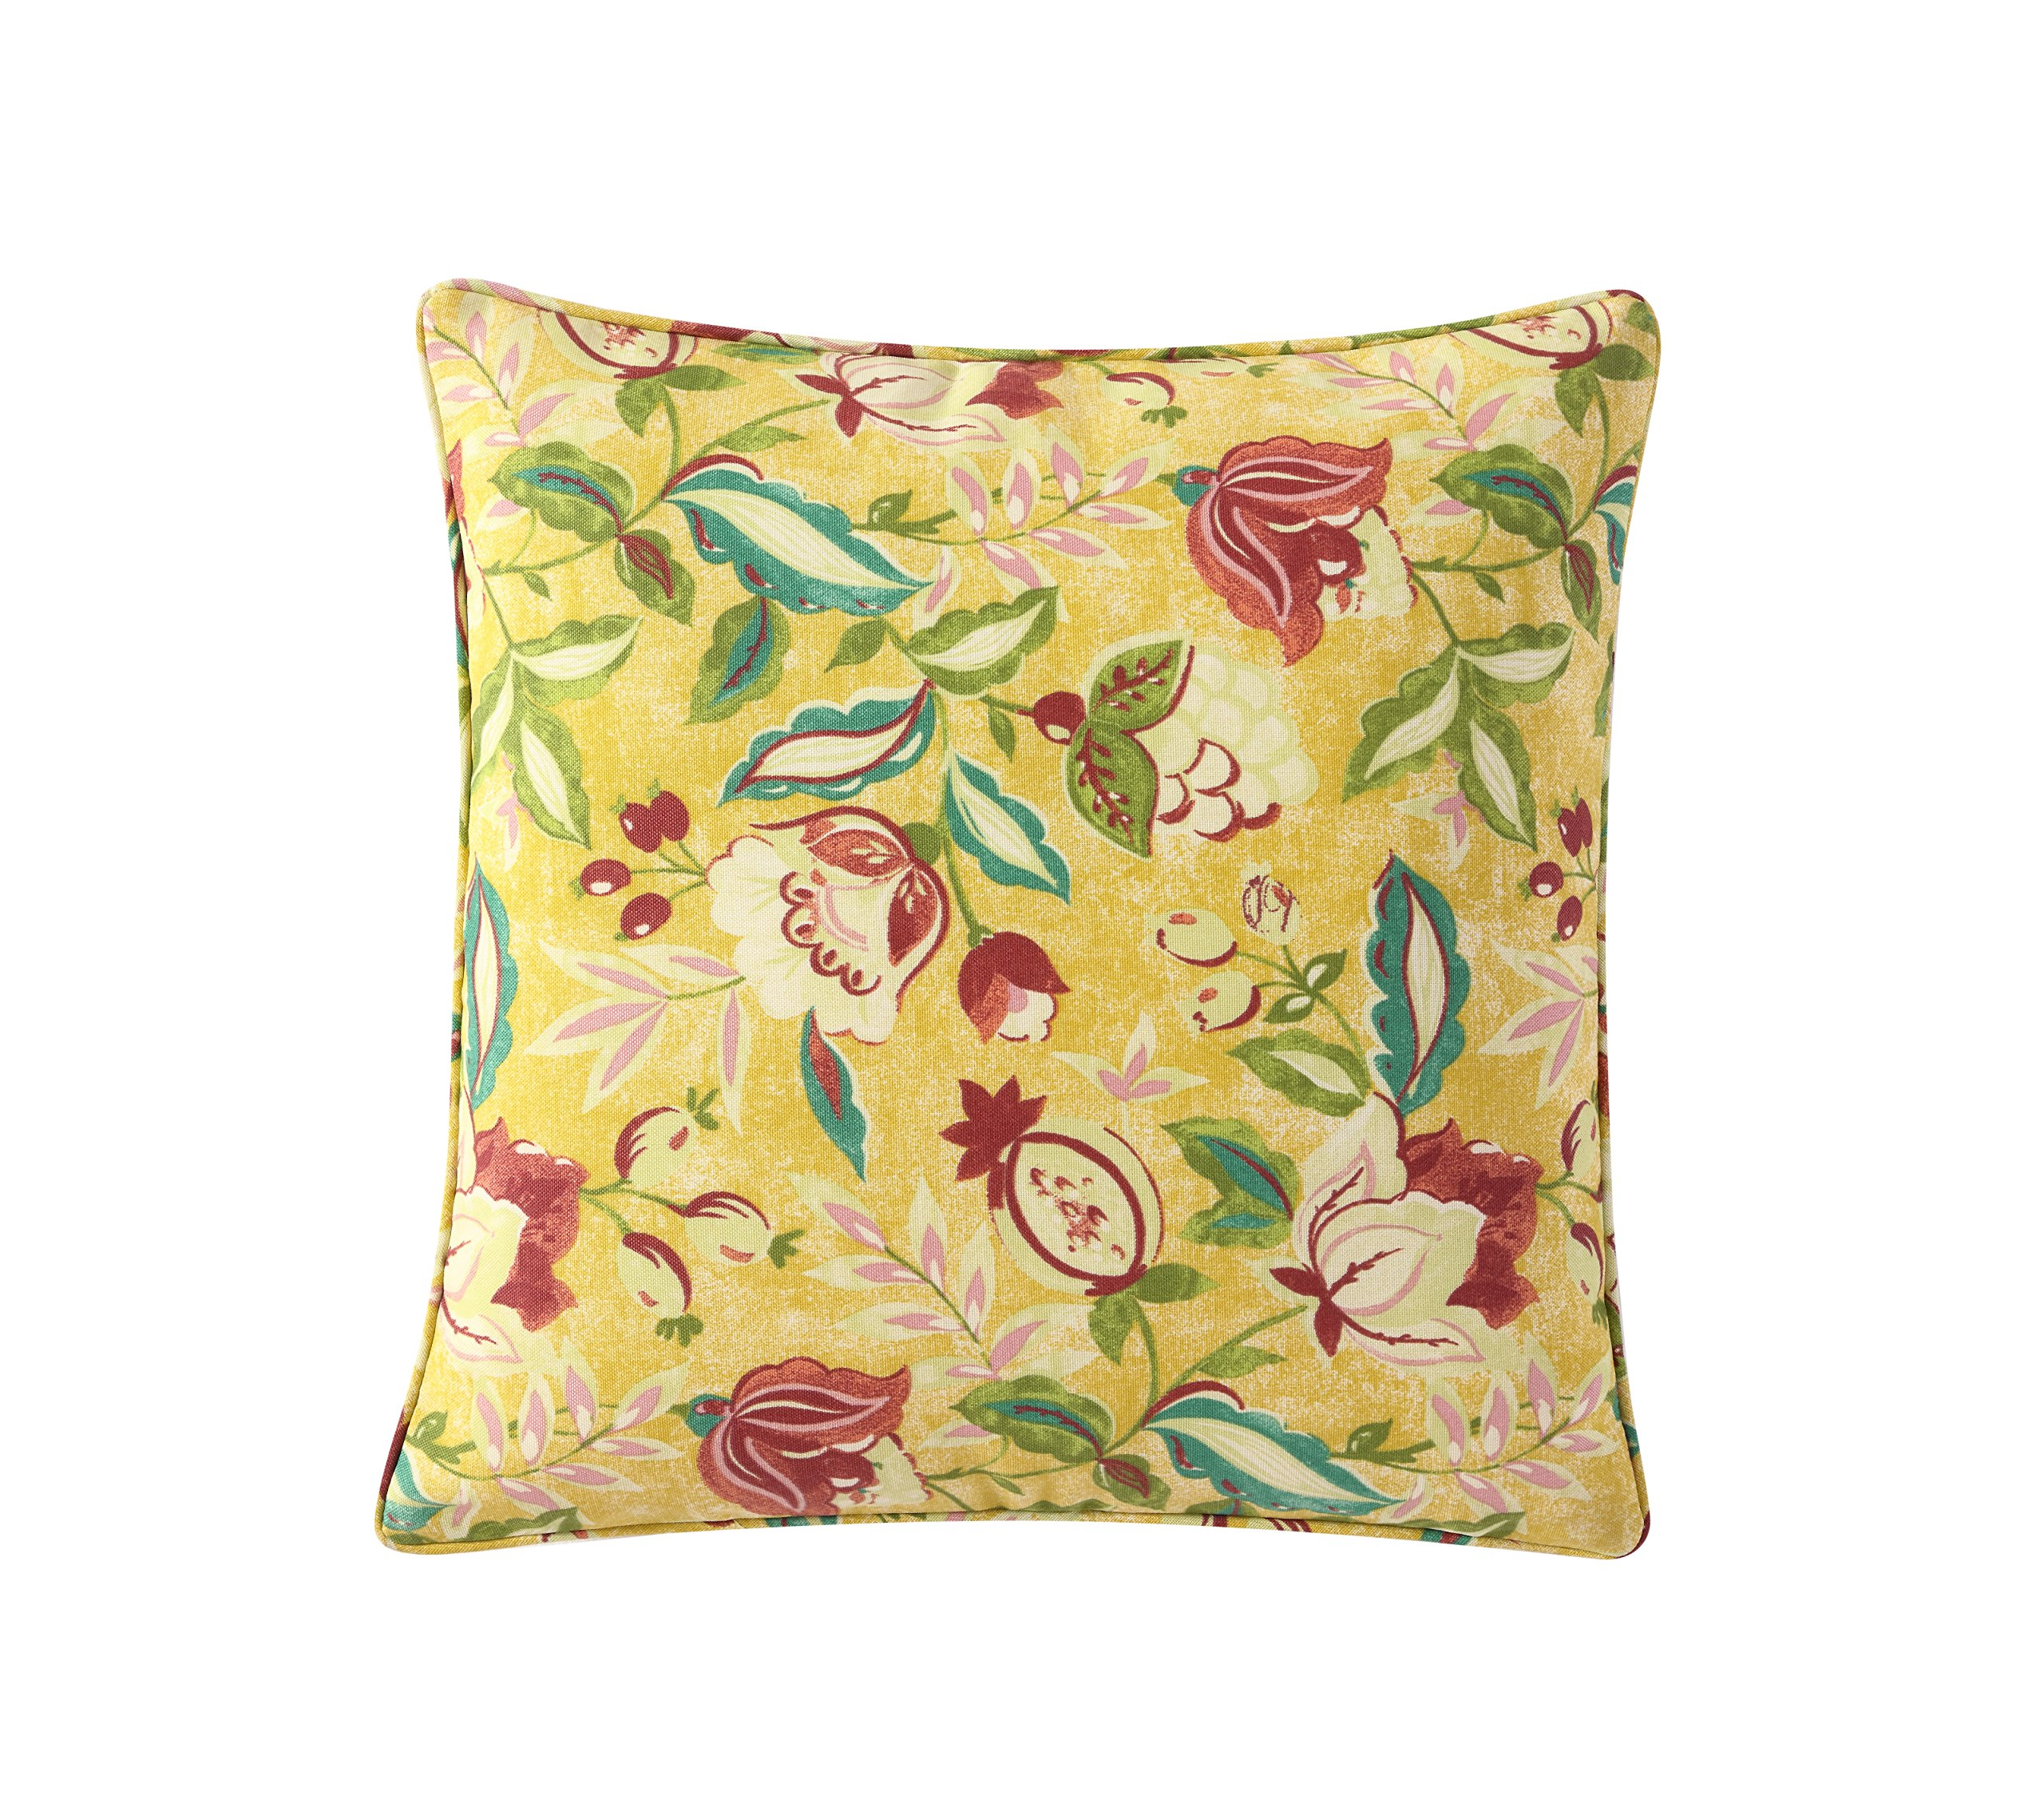 WAVERLY Indoor/Outdoor Decorative Throw Cushion – 17 x 17 Inches, FILLING INCLUDED, Available in Many Designs, Comfortable and Durable (Mod Poetry) - UV RESISTANT: The Waverly collection of outdoor cushions is made of 100% polyester UV resistant fabric. WATER REPELLENT: Made to withstand the outdoors, the water repellant fabric will not soak up from spills. FILLING INCLUDED: Throw pillows are shipped with the filling included. Notice: Due to vacuum package, the pillow comes in compressed form, it will take 1-2 days to fully expand. - patio, outdoor-throw-pillows, outdoor-decor - 91QxltS sHL -